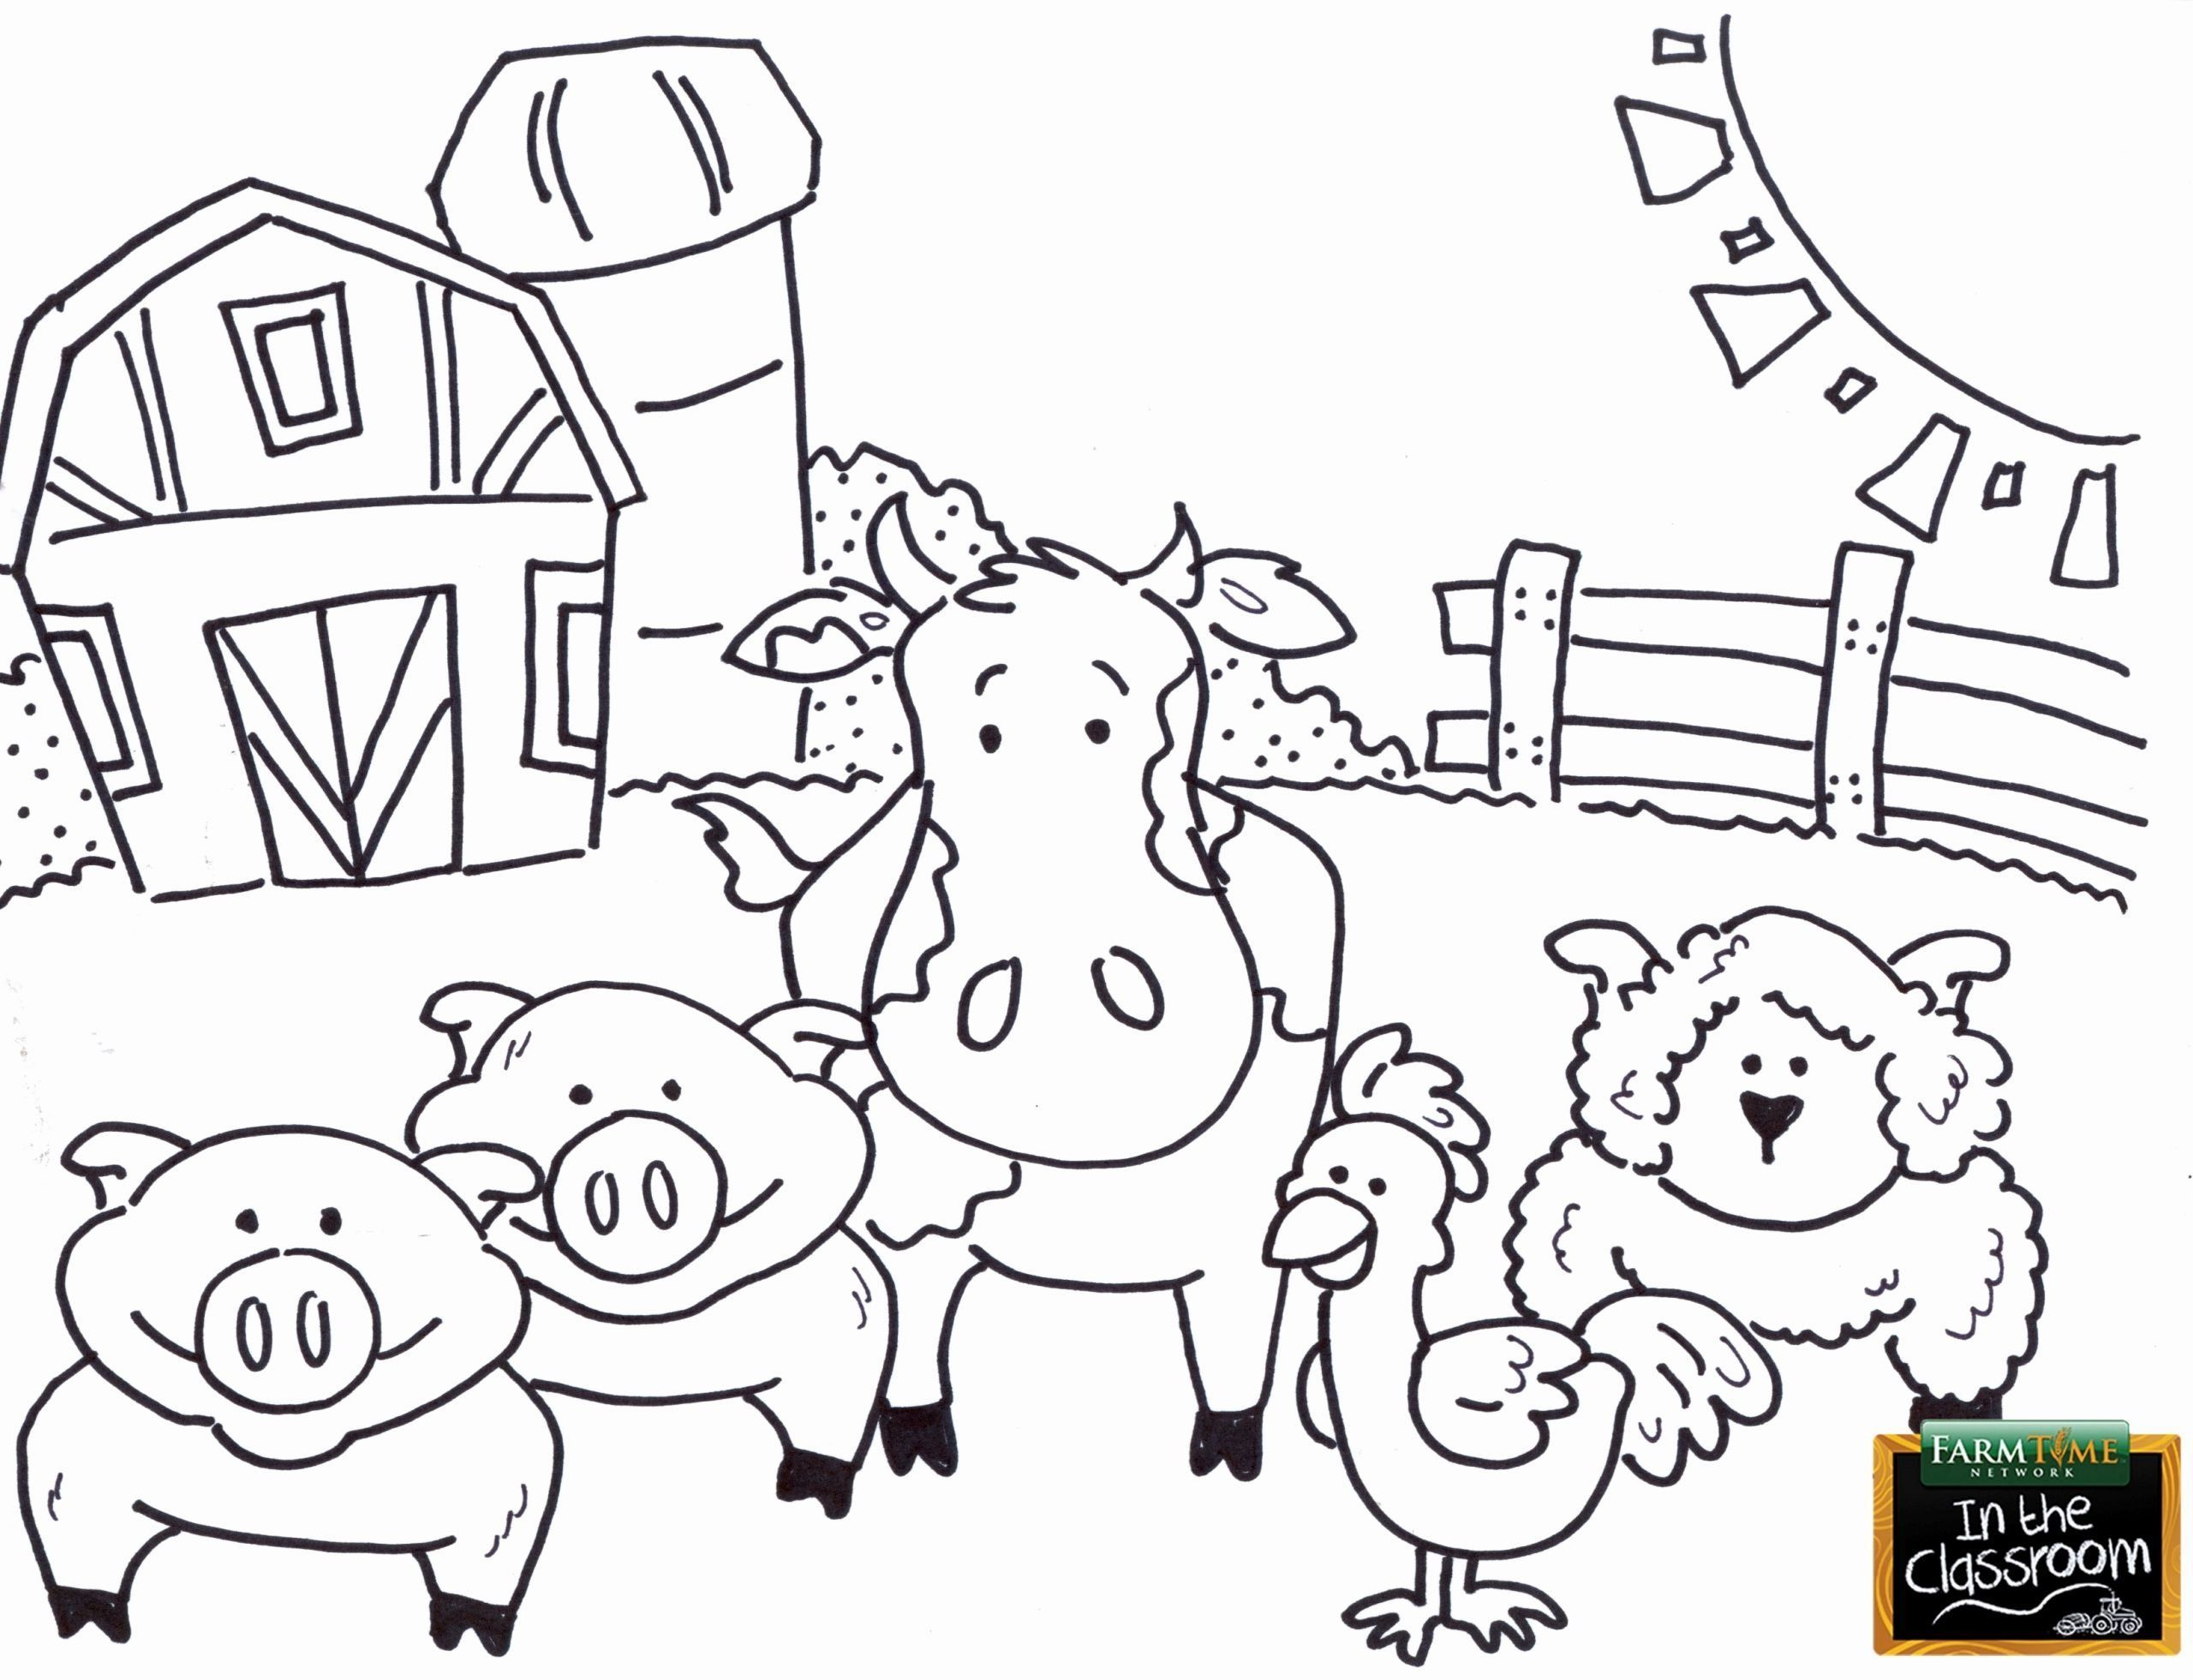 11 Best Farm Coloring Pages In 2021 Farm Animal Coloring Pages Animal Coloring Books Puppy Coloring Pages